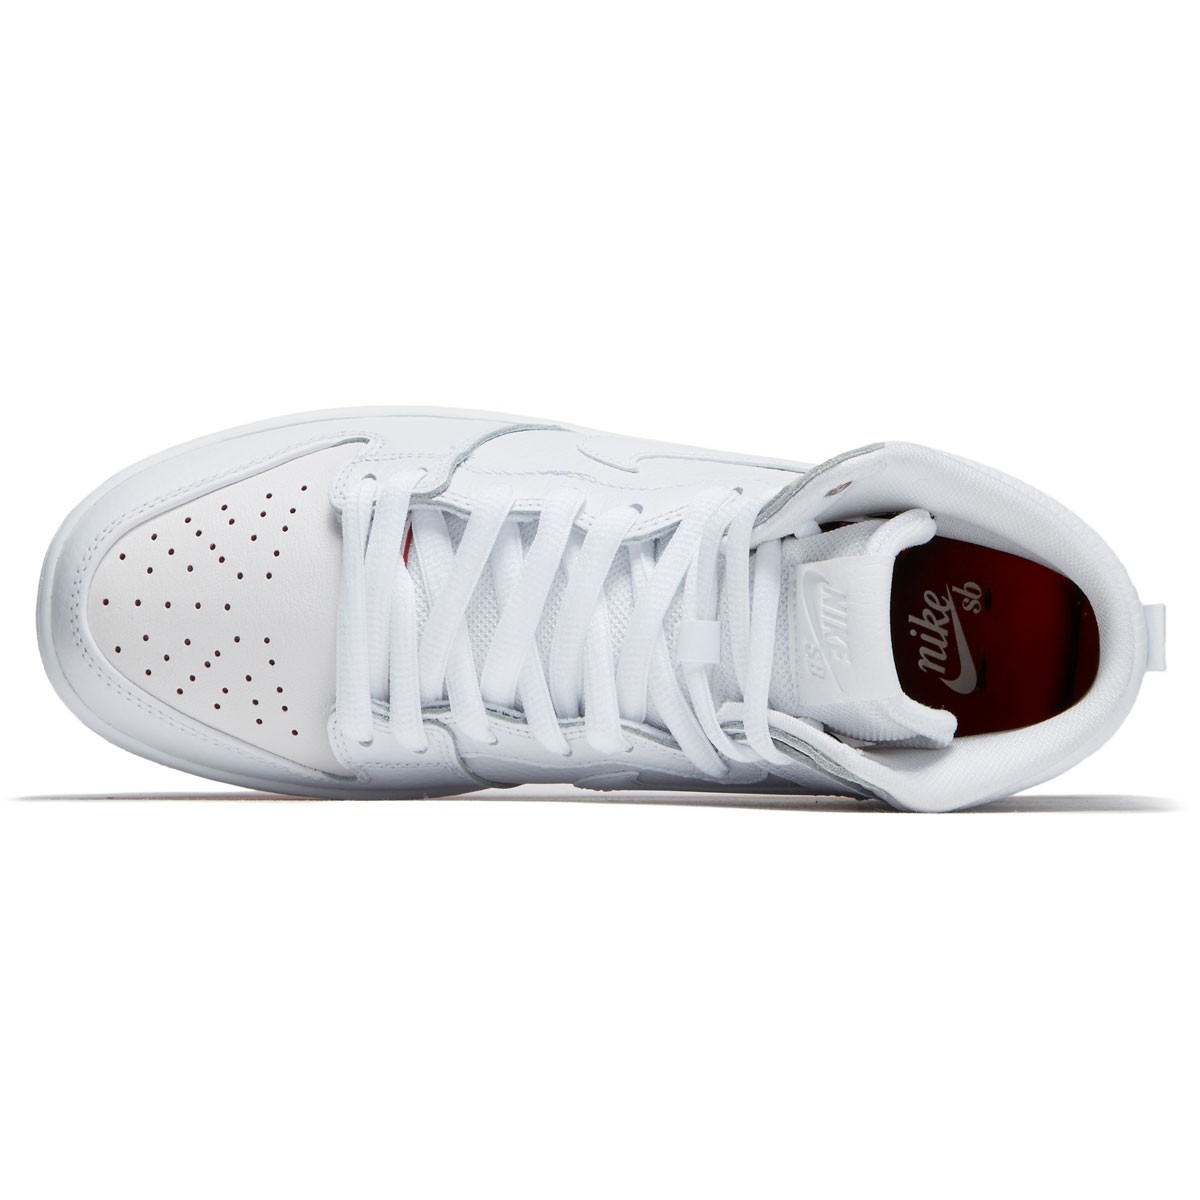 a6e0c30d3446 Nike SB Kevin Bradley Zoom Dunk High Pro QS Shoes - White White Red